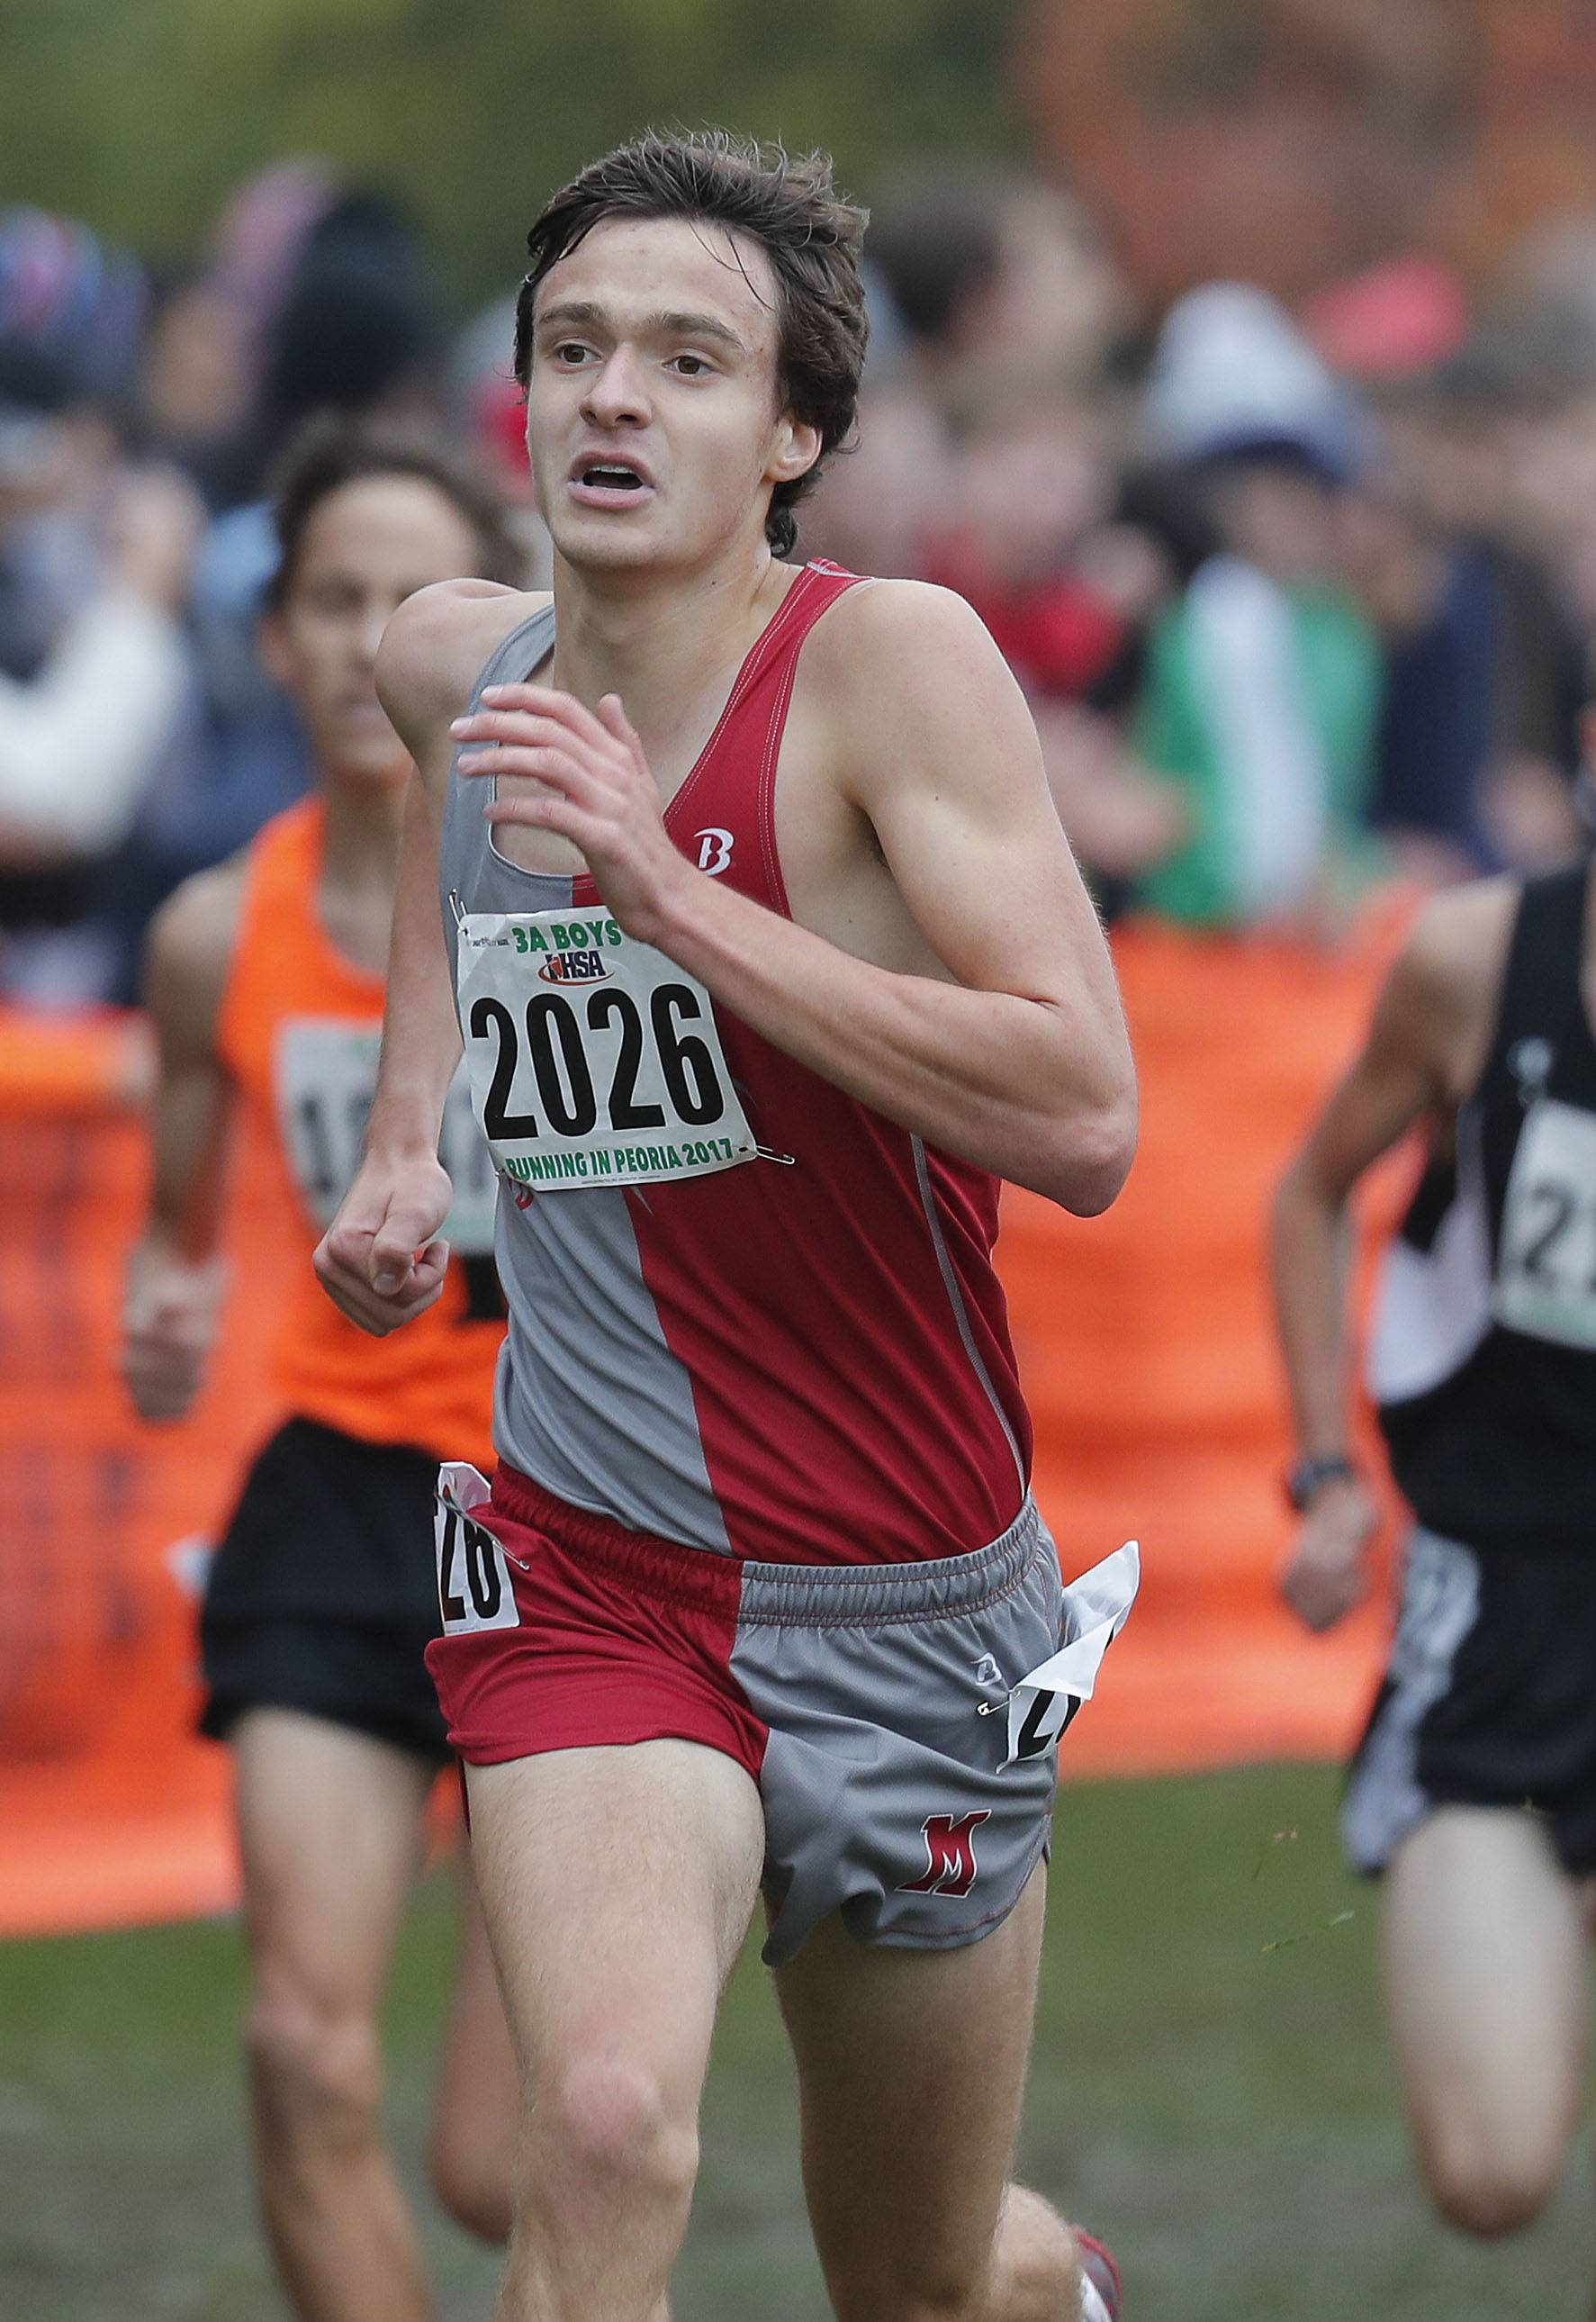 Mundelein's Robert St. Clair powers to the finish during the Class 3A boys cross country finals Saturday in Peoria.